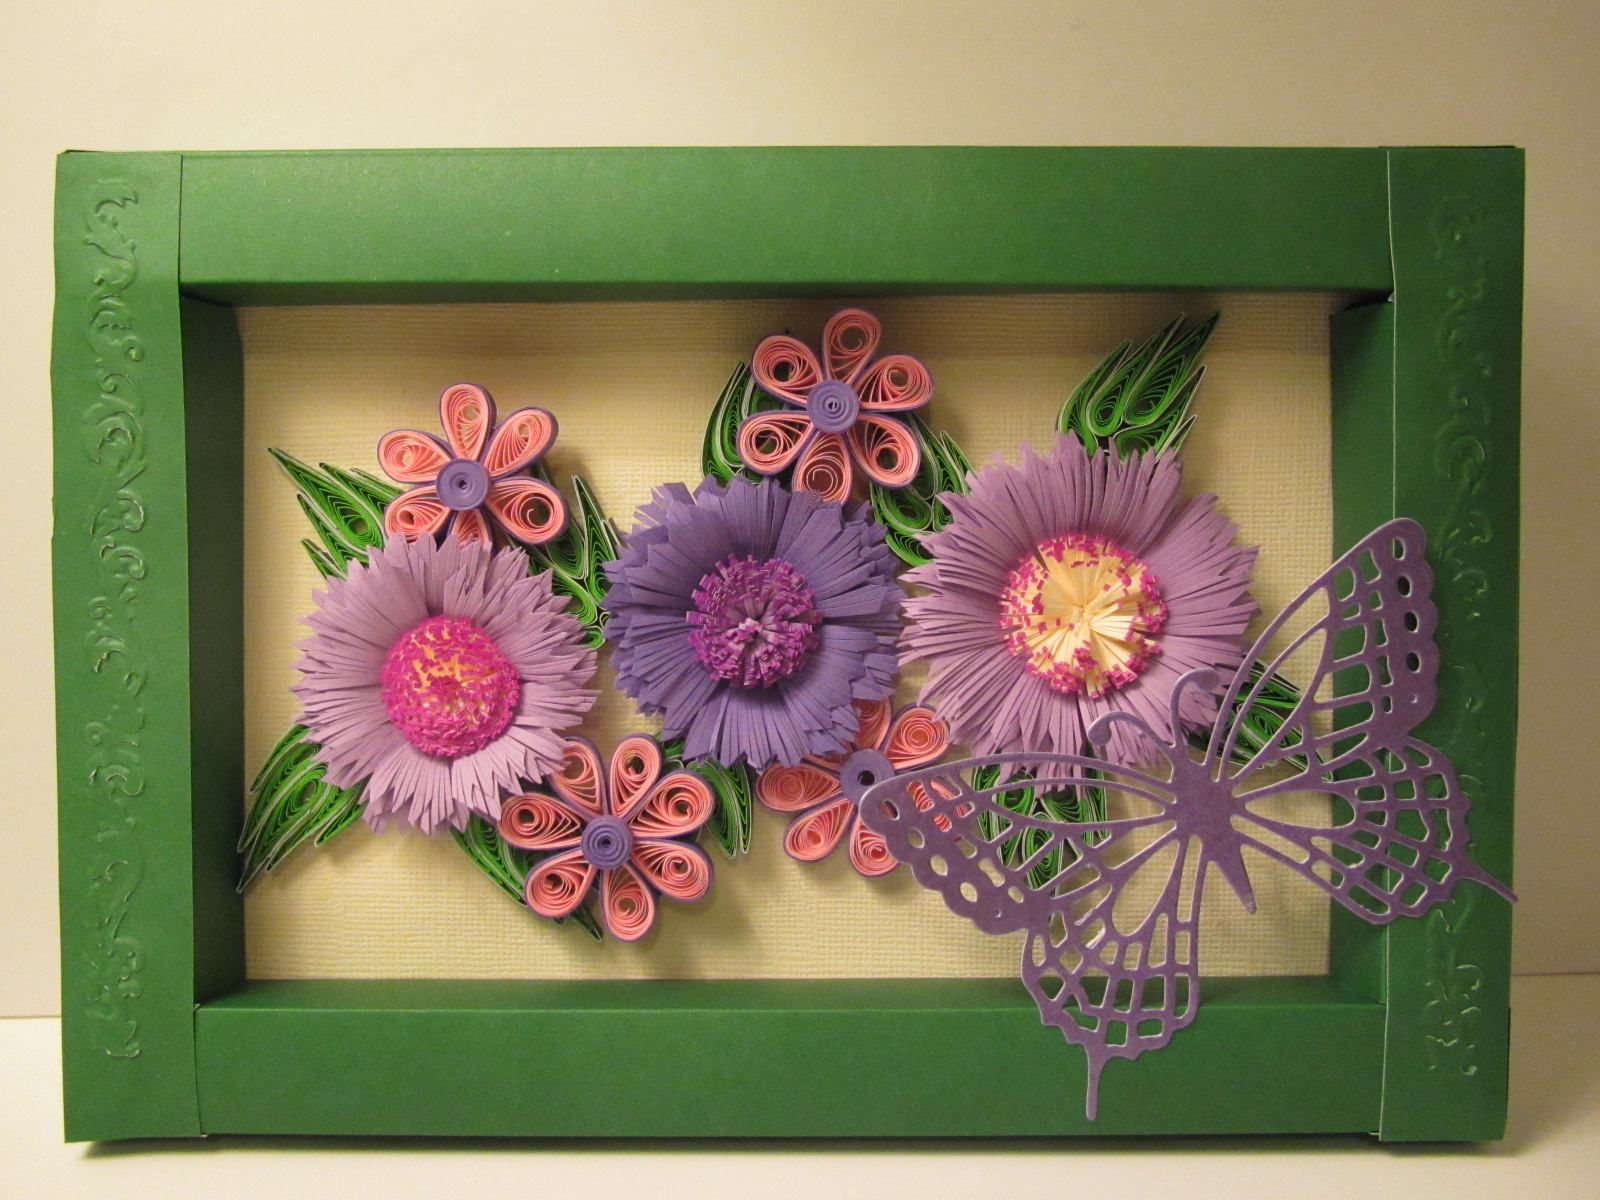 The Template For Frame Was Borrowed From Innas Creations Increationsblogspot 2009 06 How To Make Simple Paper